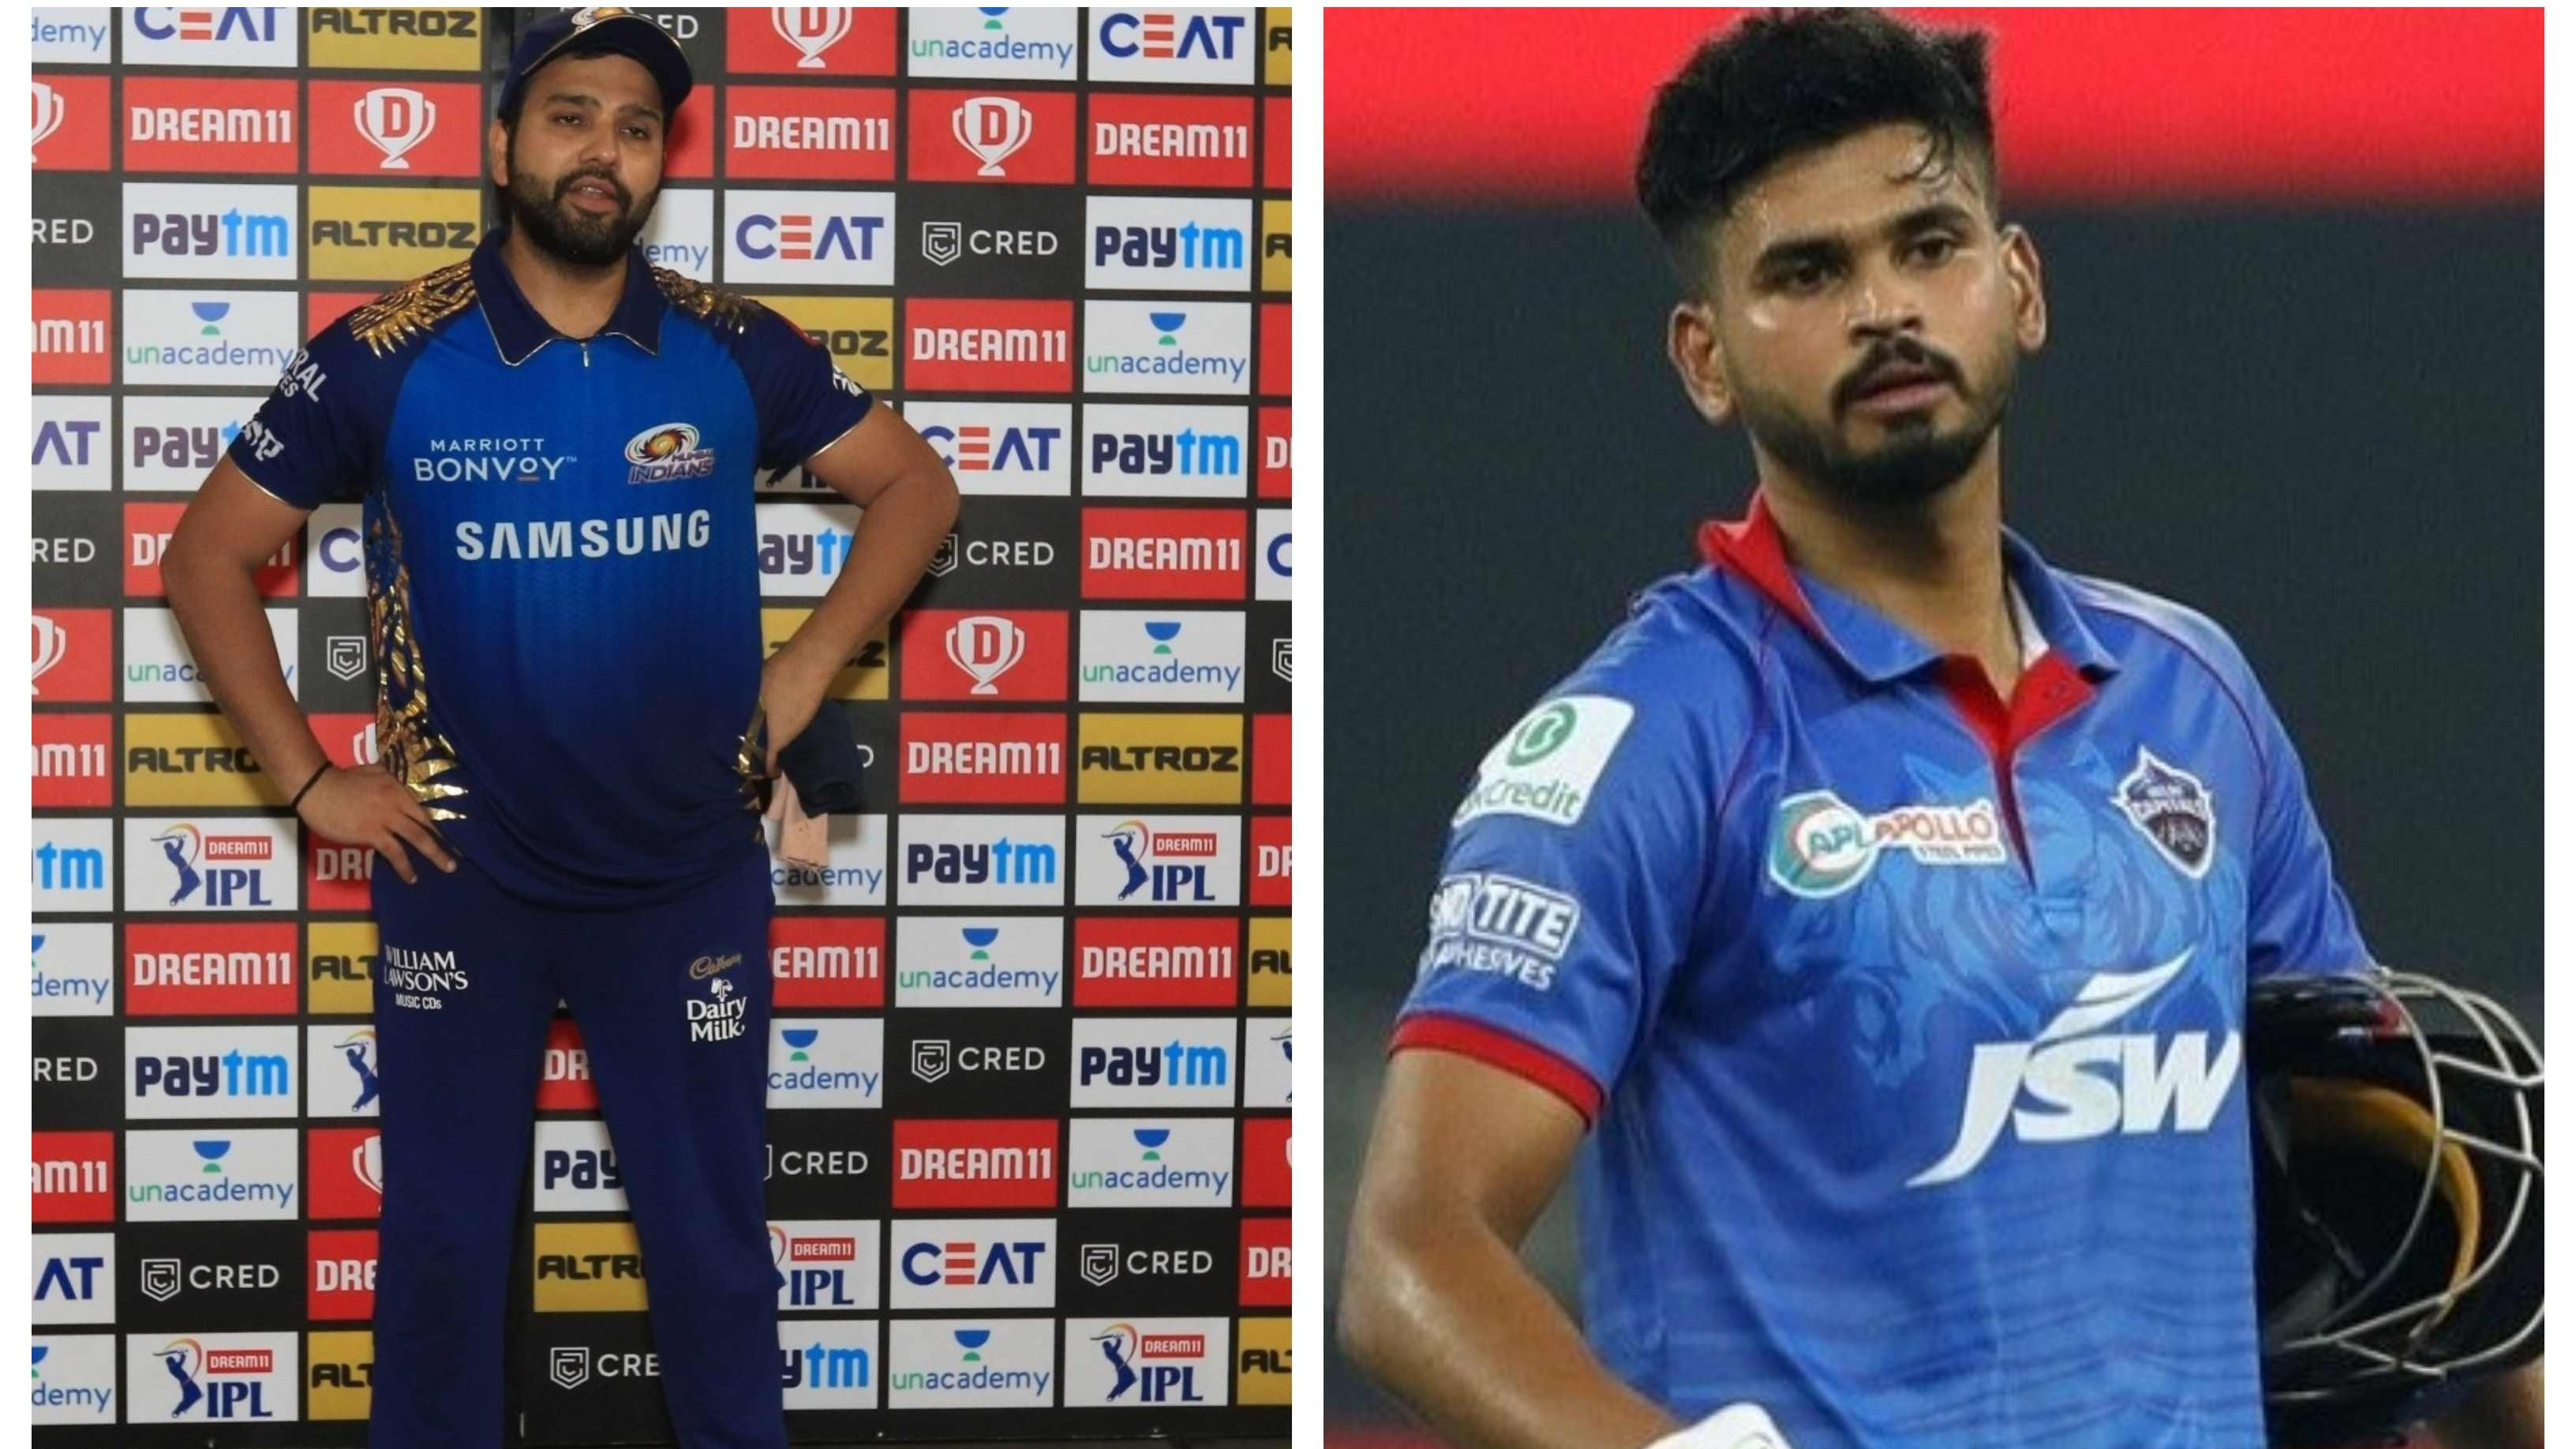 IPL 2020: Rohit Sharma, Shreyas Iyer share their sentiments after MI's win over DC in the final